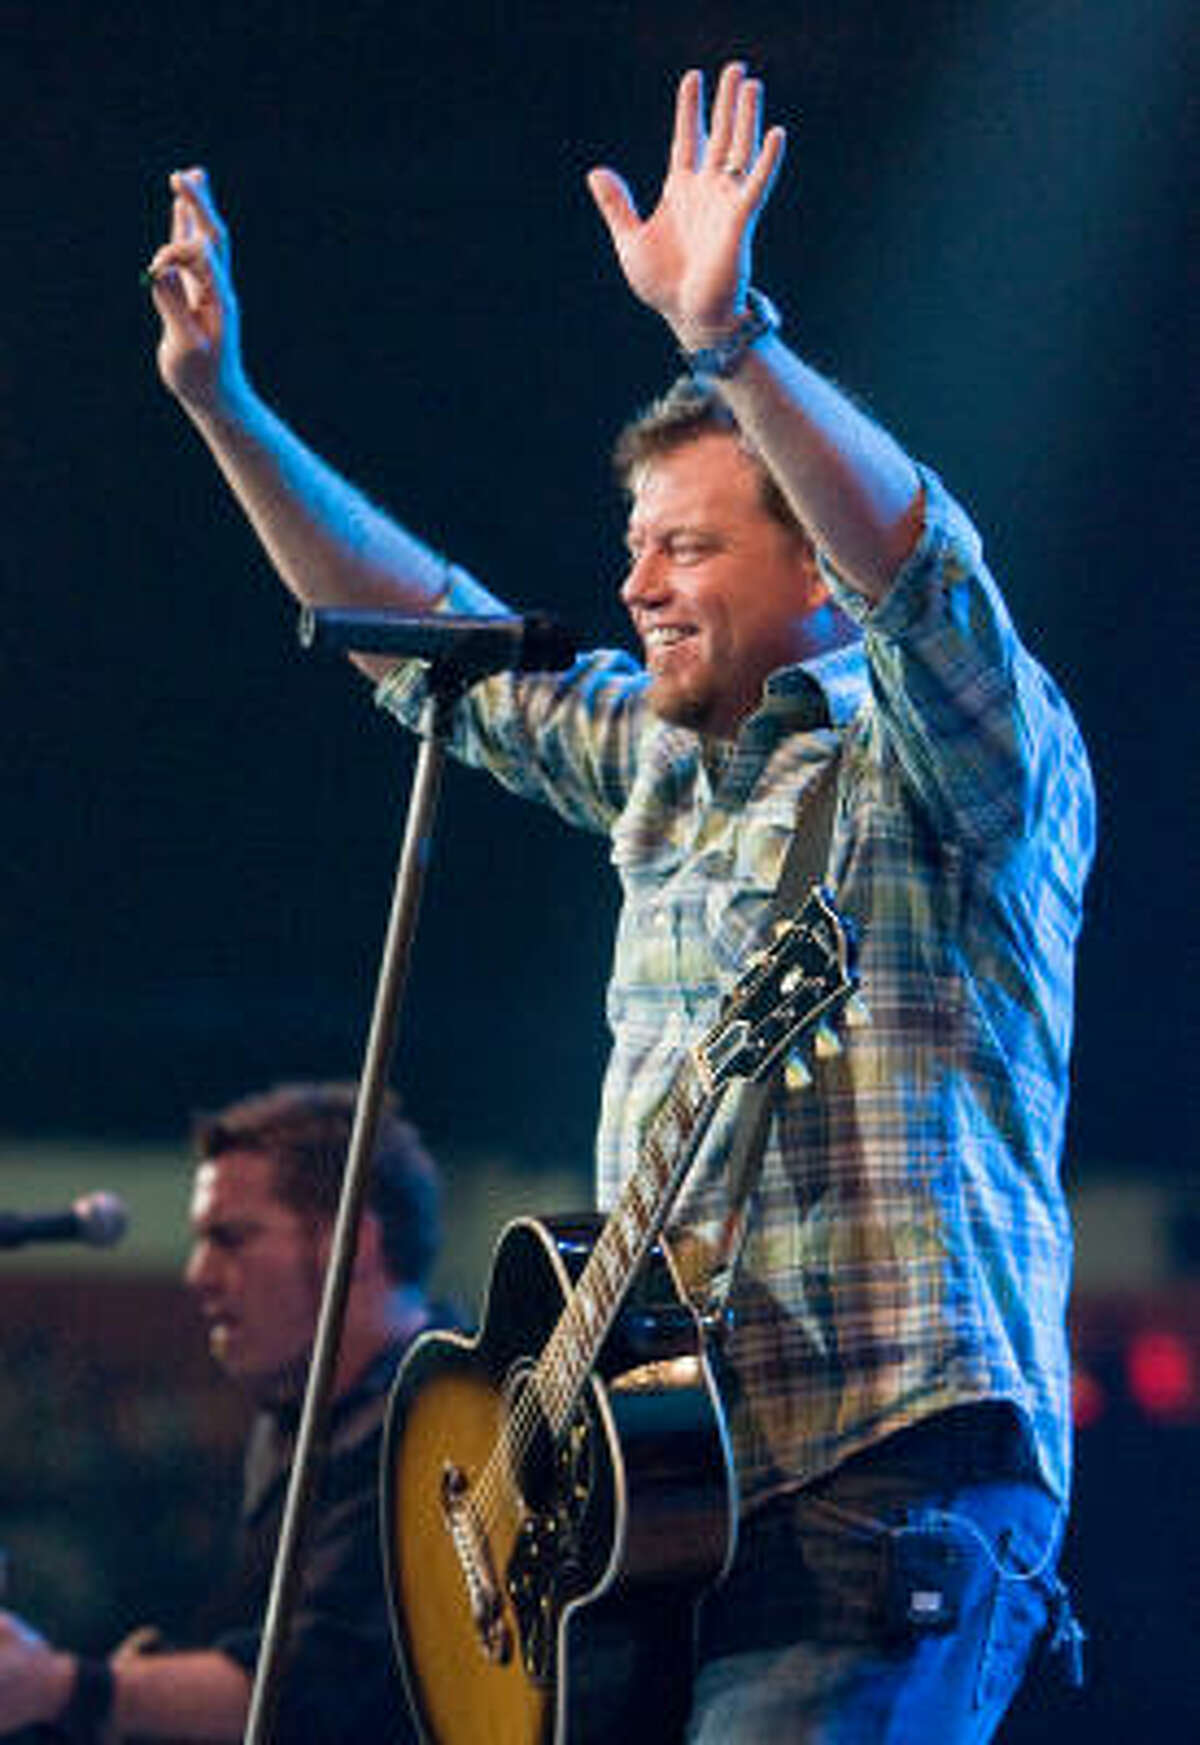 Pat Green performs at the Houston Livestock Show and Rodeo Thursday, March 19.